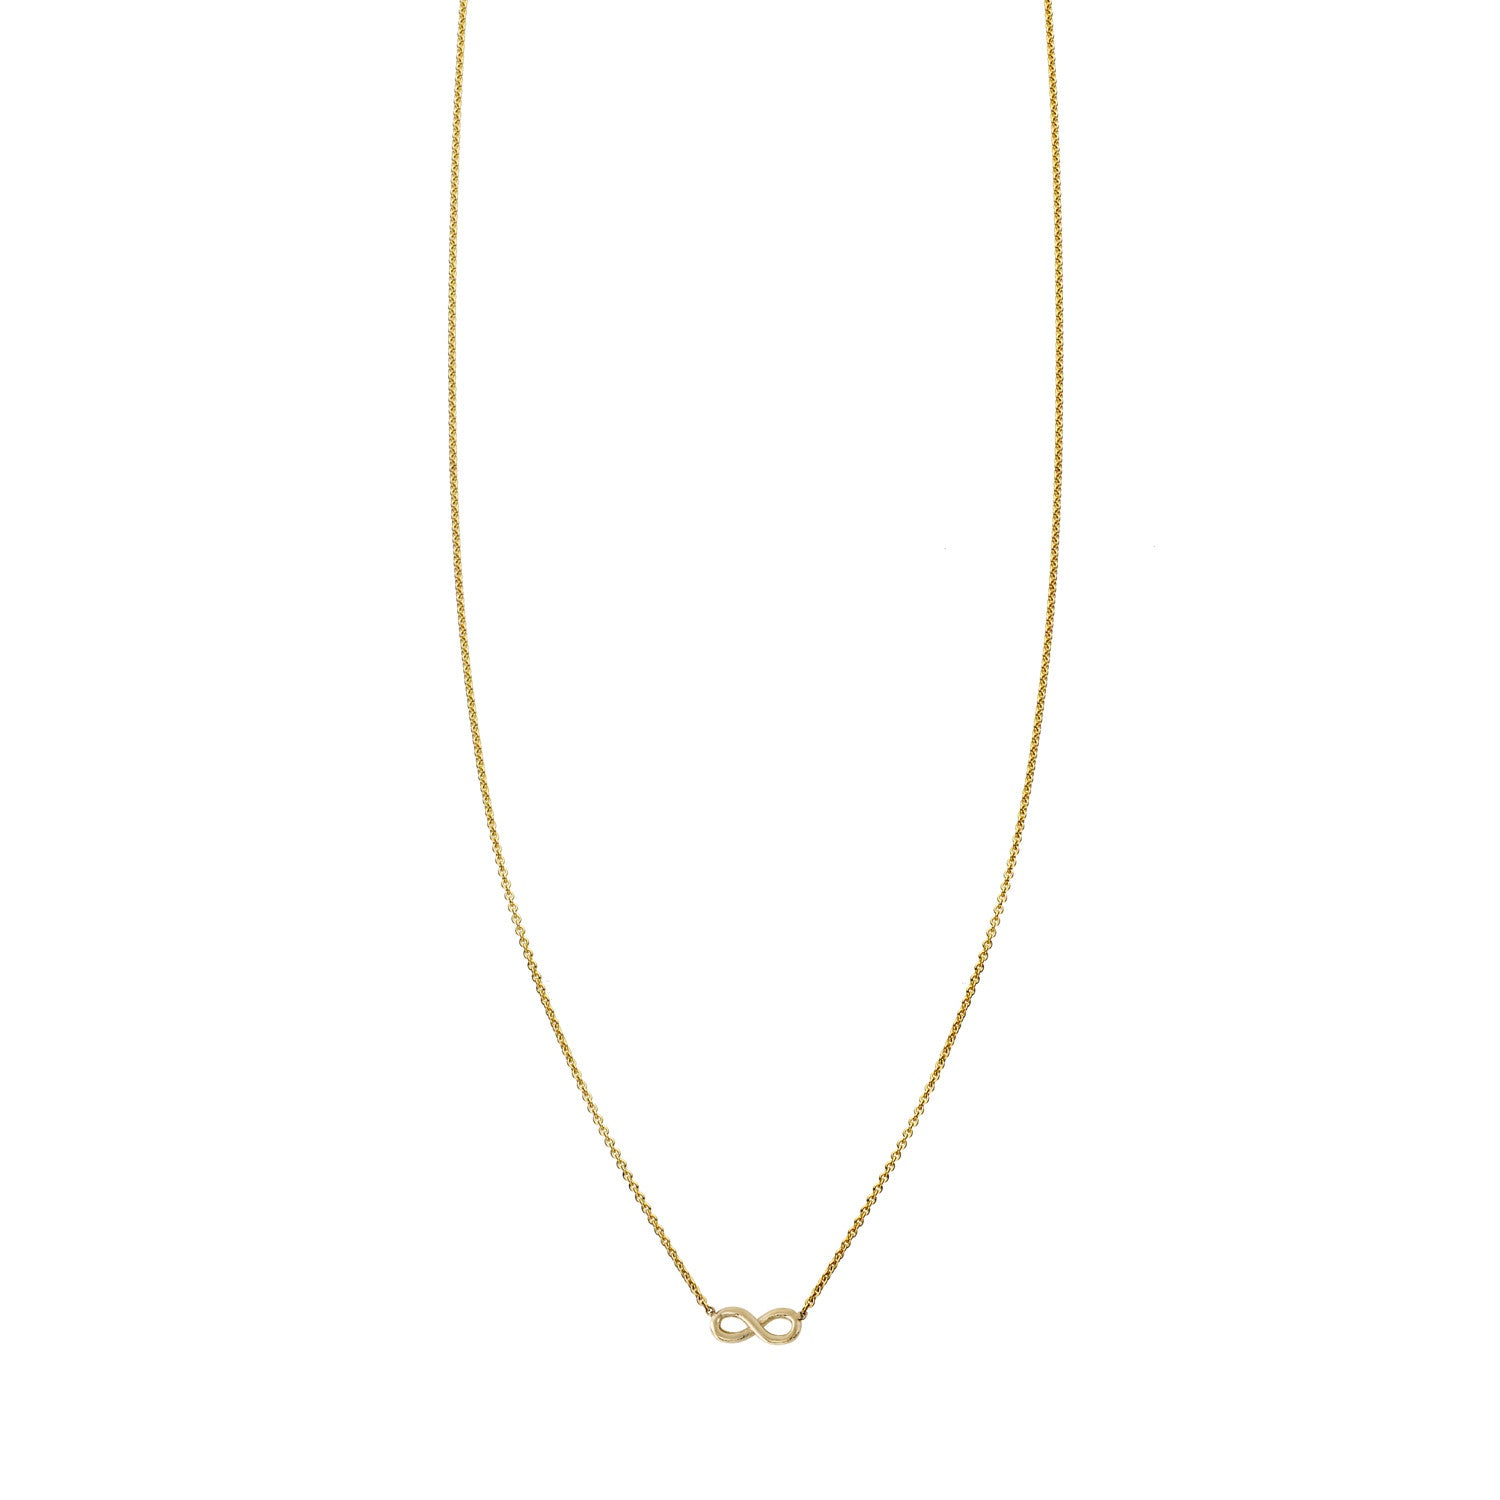 Miniature gold infinity charm pendant necklace